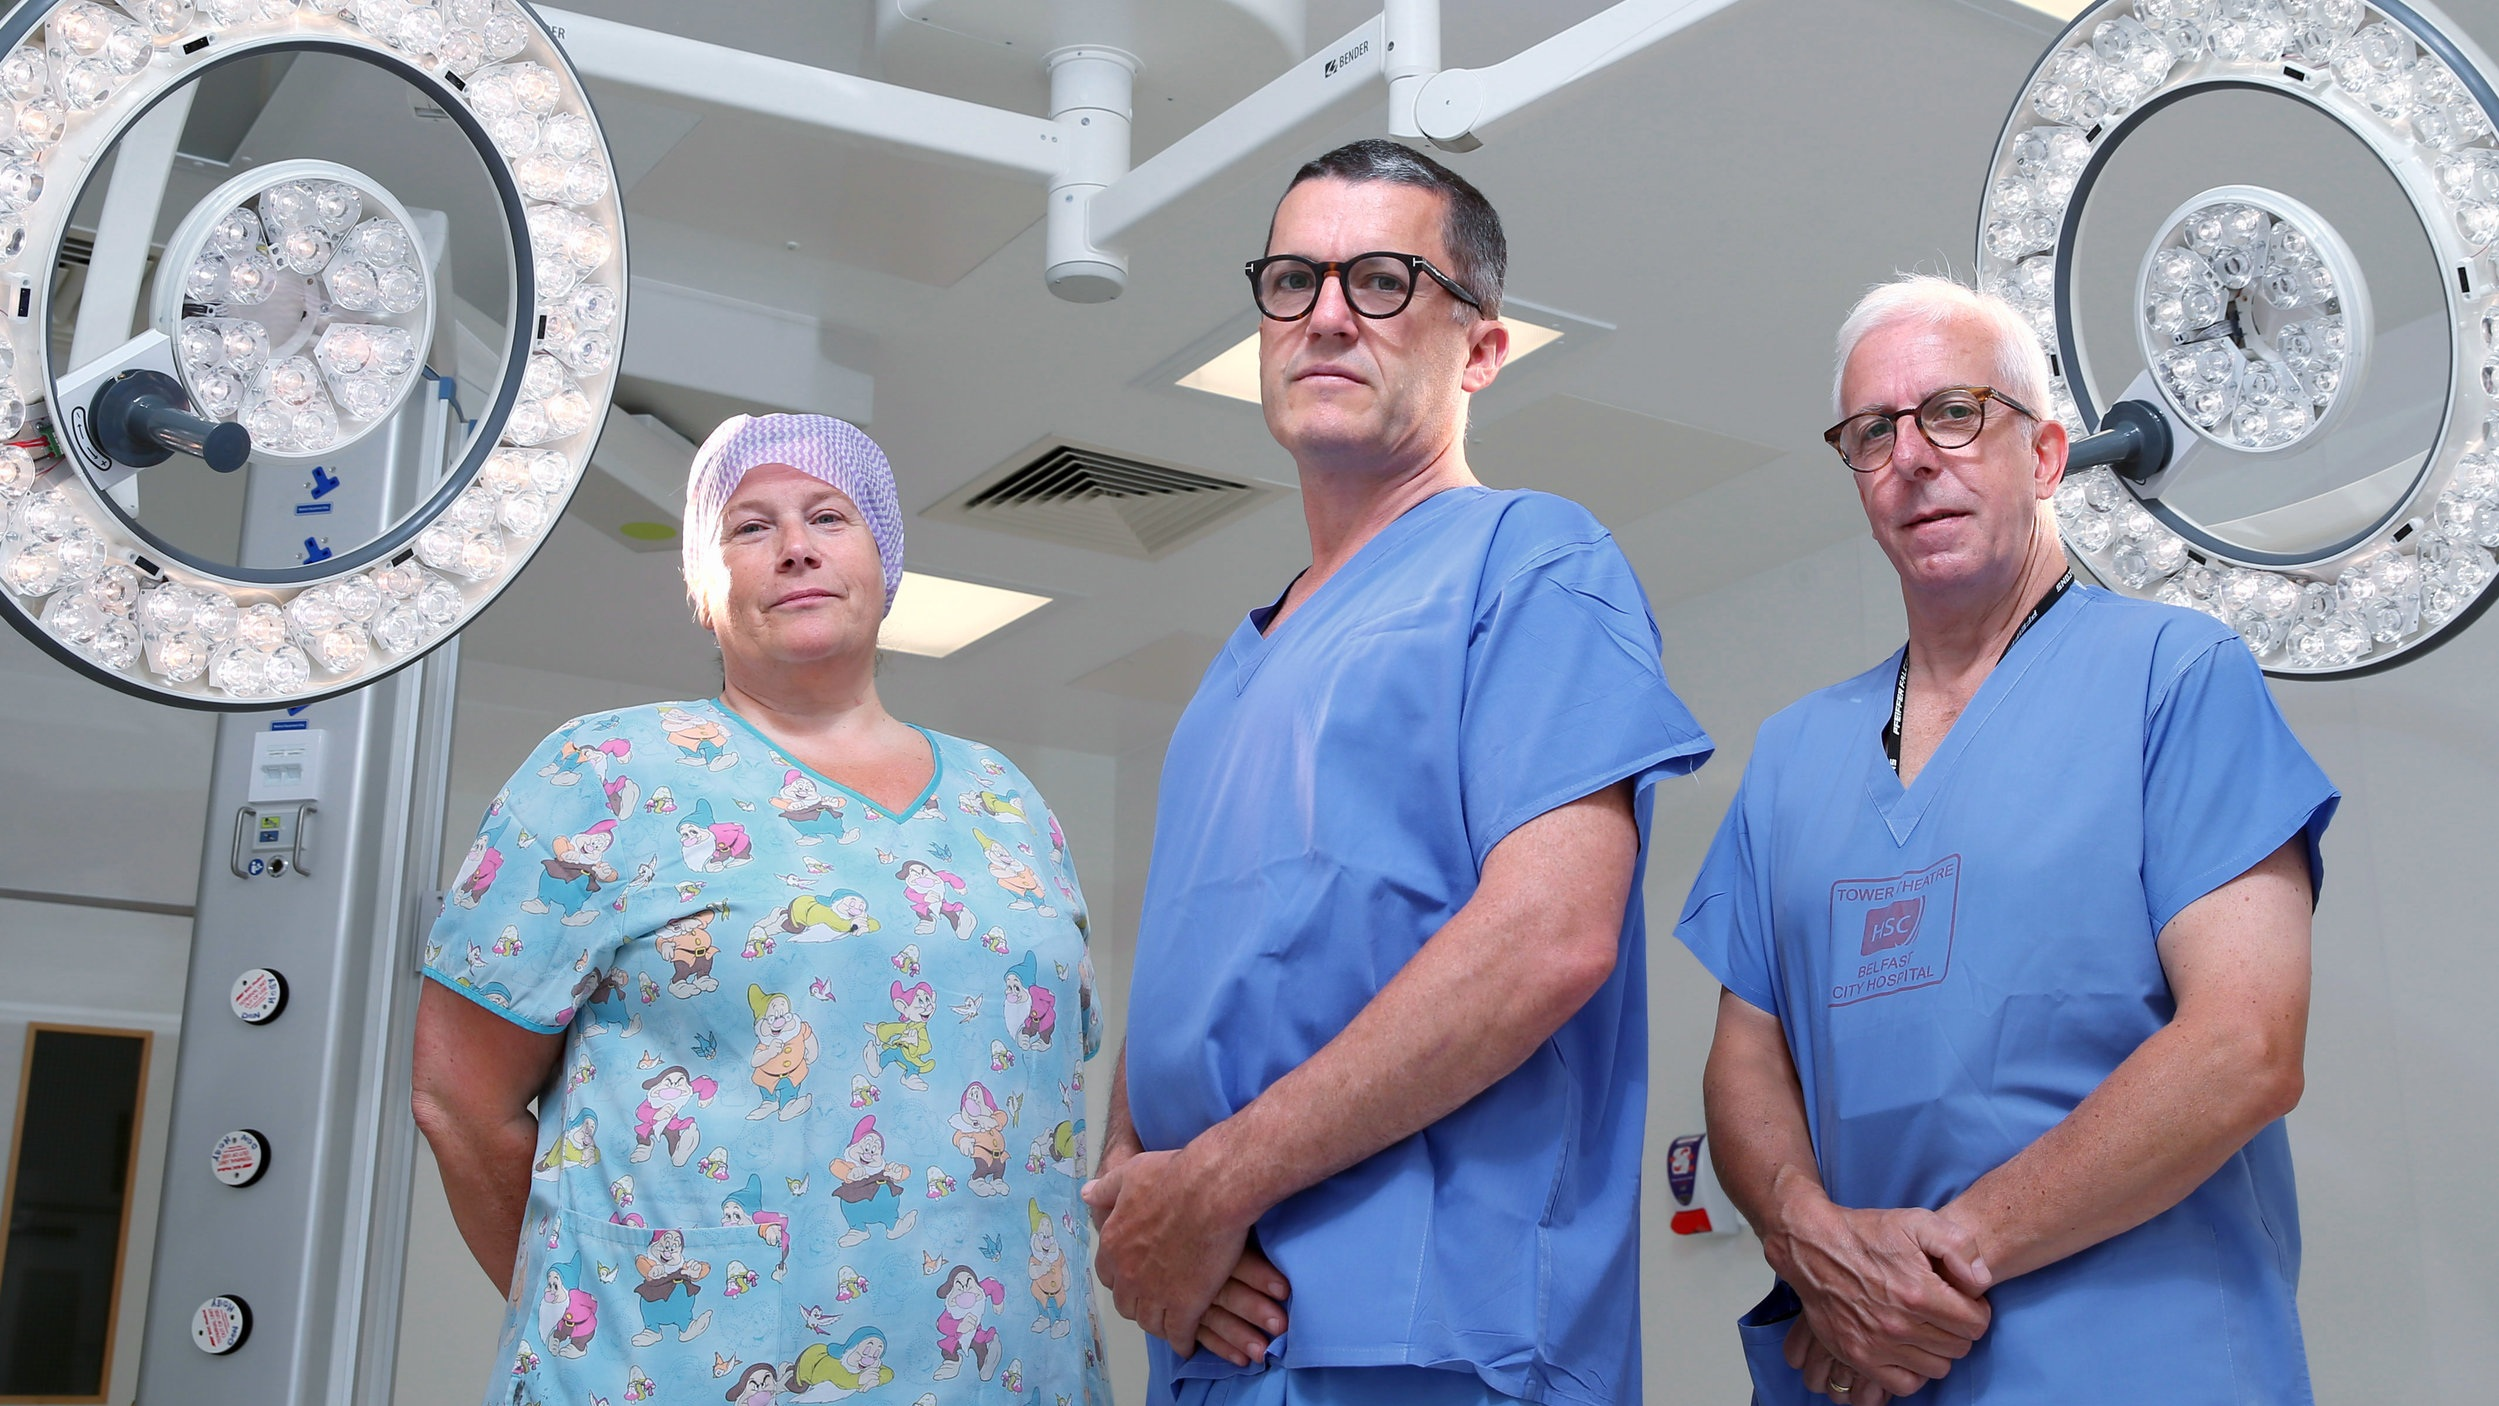 The+Hospital-From+the+Inside+-+Eps1+-+Theatre+Sister+Lyndsay+Greer%3B+Consultant+Surgeon+Andrew+Kennedy+%26+Consultant+Anaesthetist+Paul+Weir+at+Belfast+City+Hospital.jpg